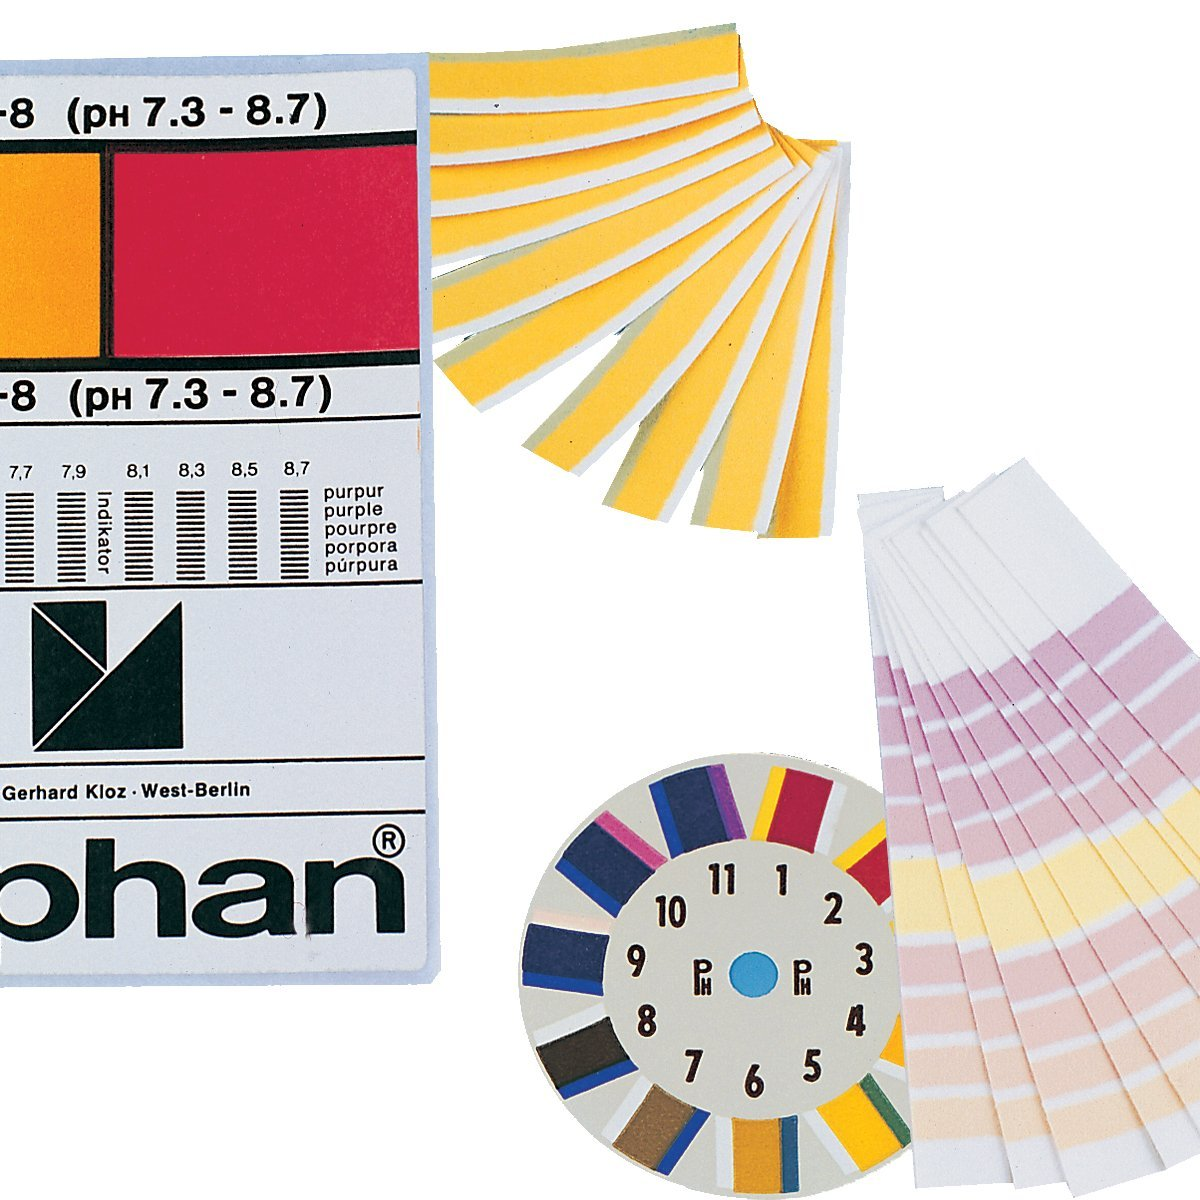 Neolab 3  3827  papier Indicateur de pH Lyphan, 0,3, 4.9/7.9, 6  m 6 m 3-3827